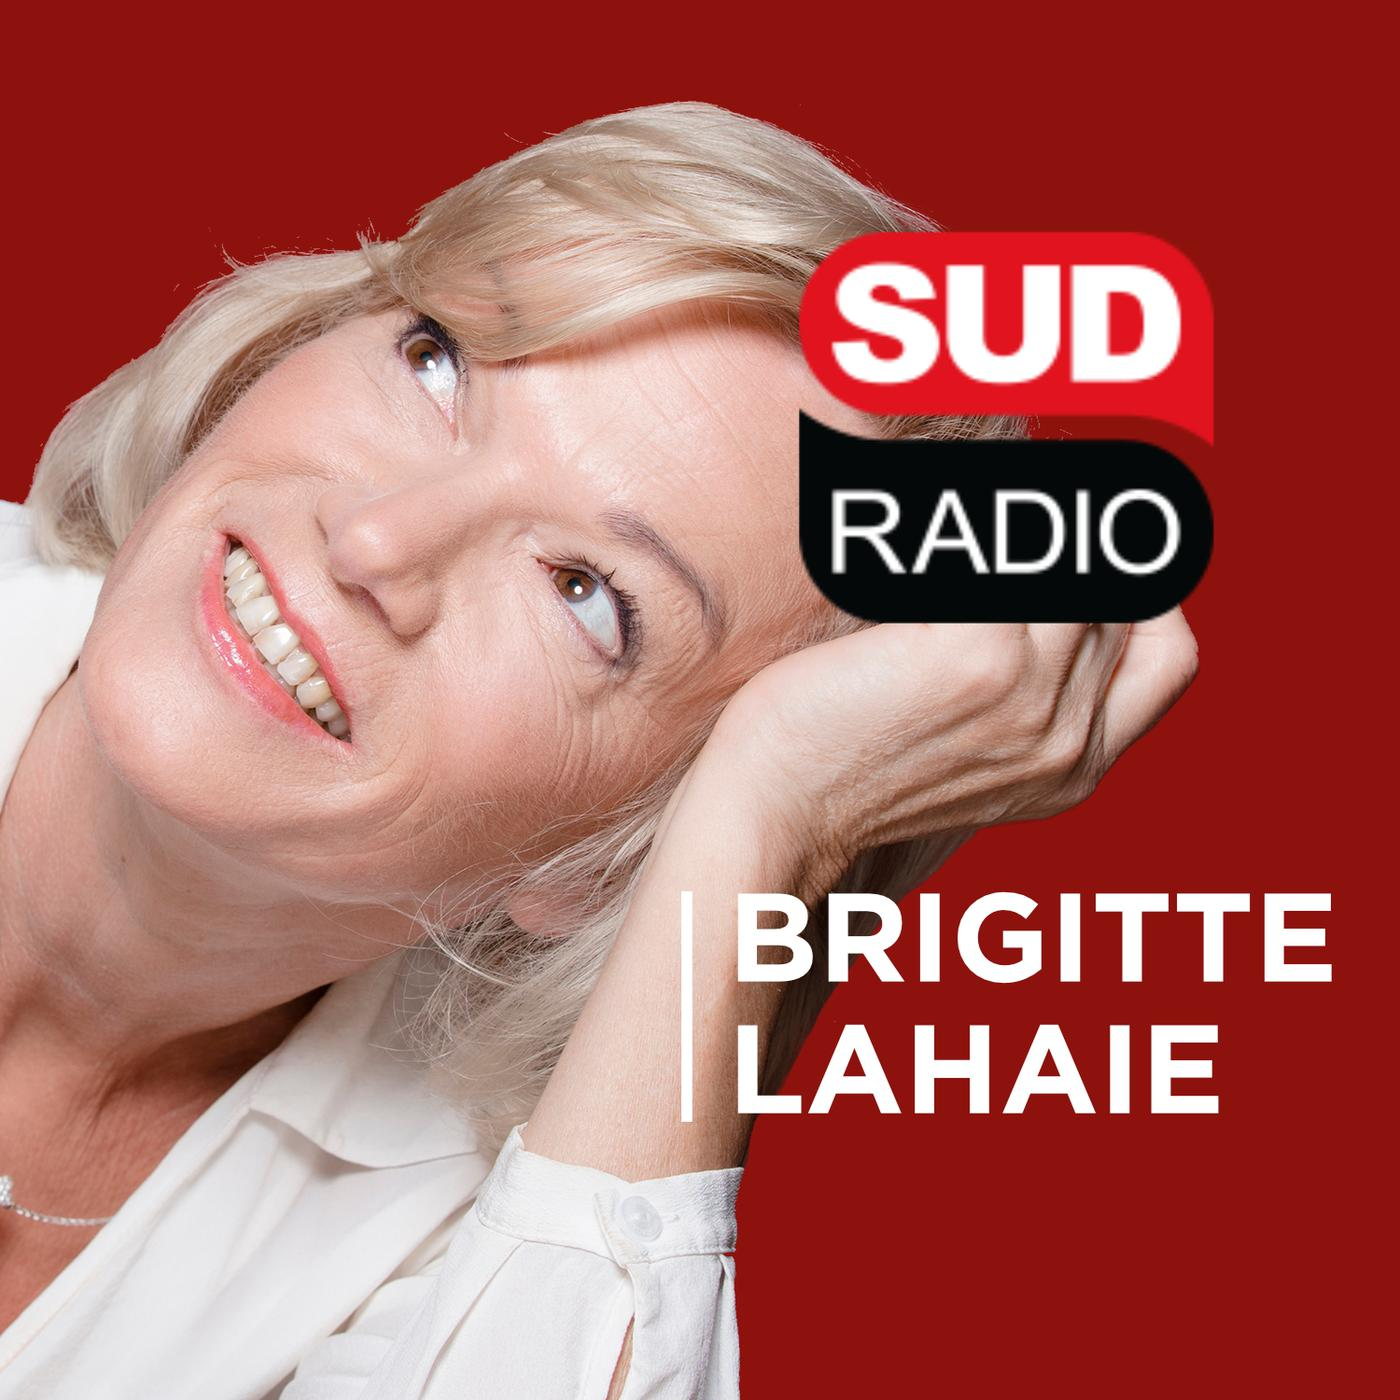 Brigitte Lahaie Brigitte Lahaie Sud Radio Podcast Listen Notes How do we know they're the hottest? brigitte lahaie sud radio podcast